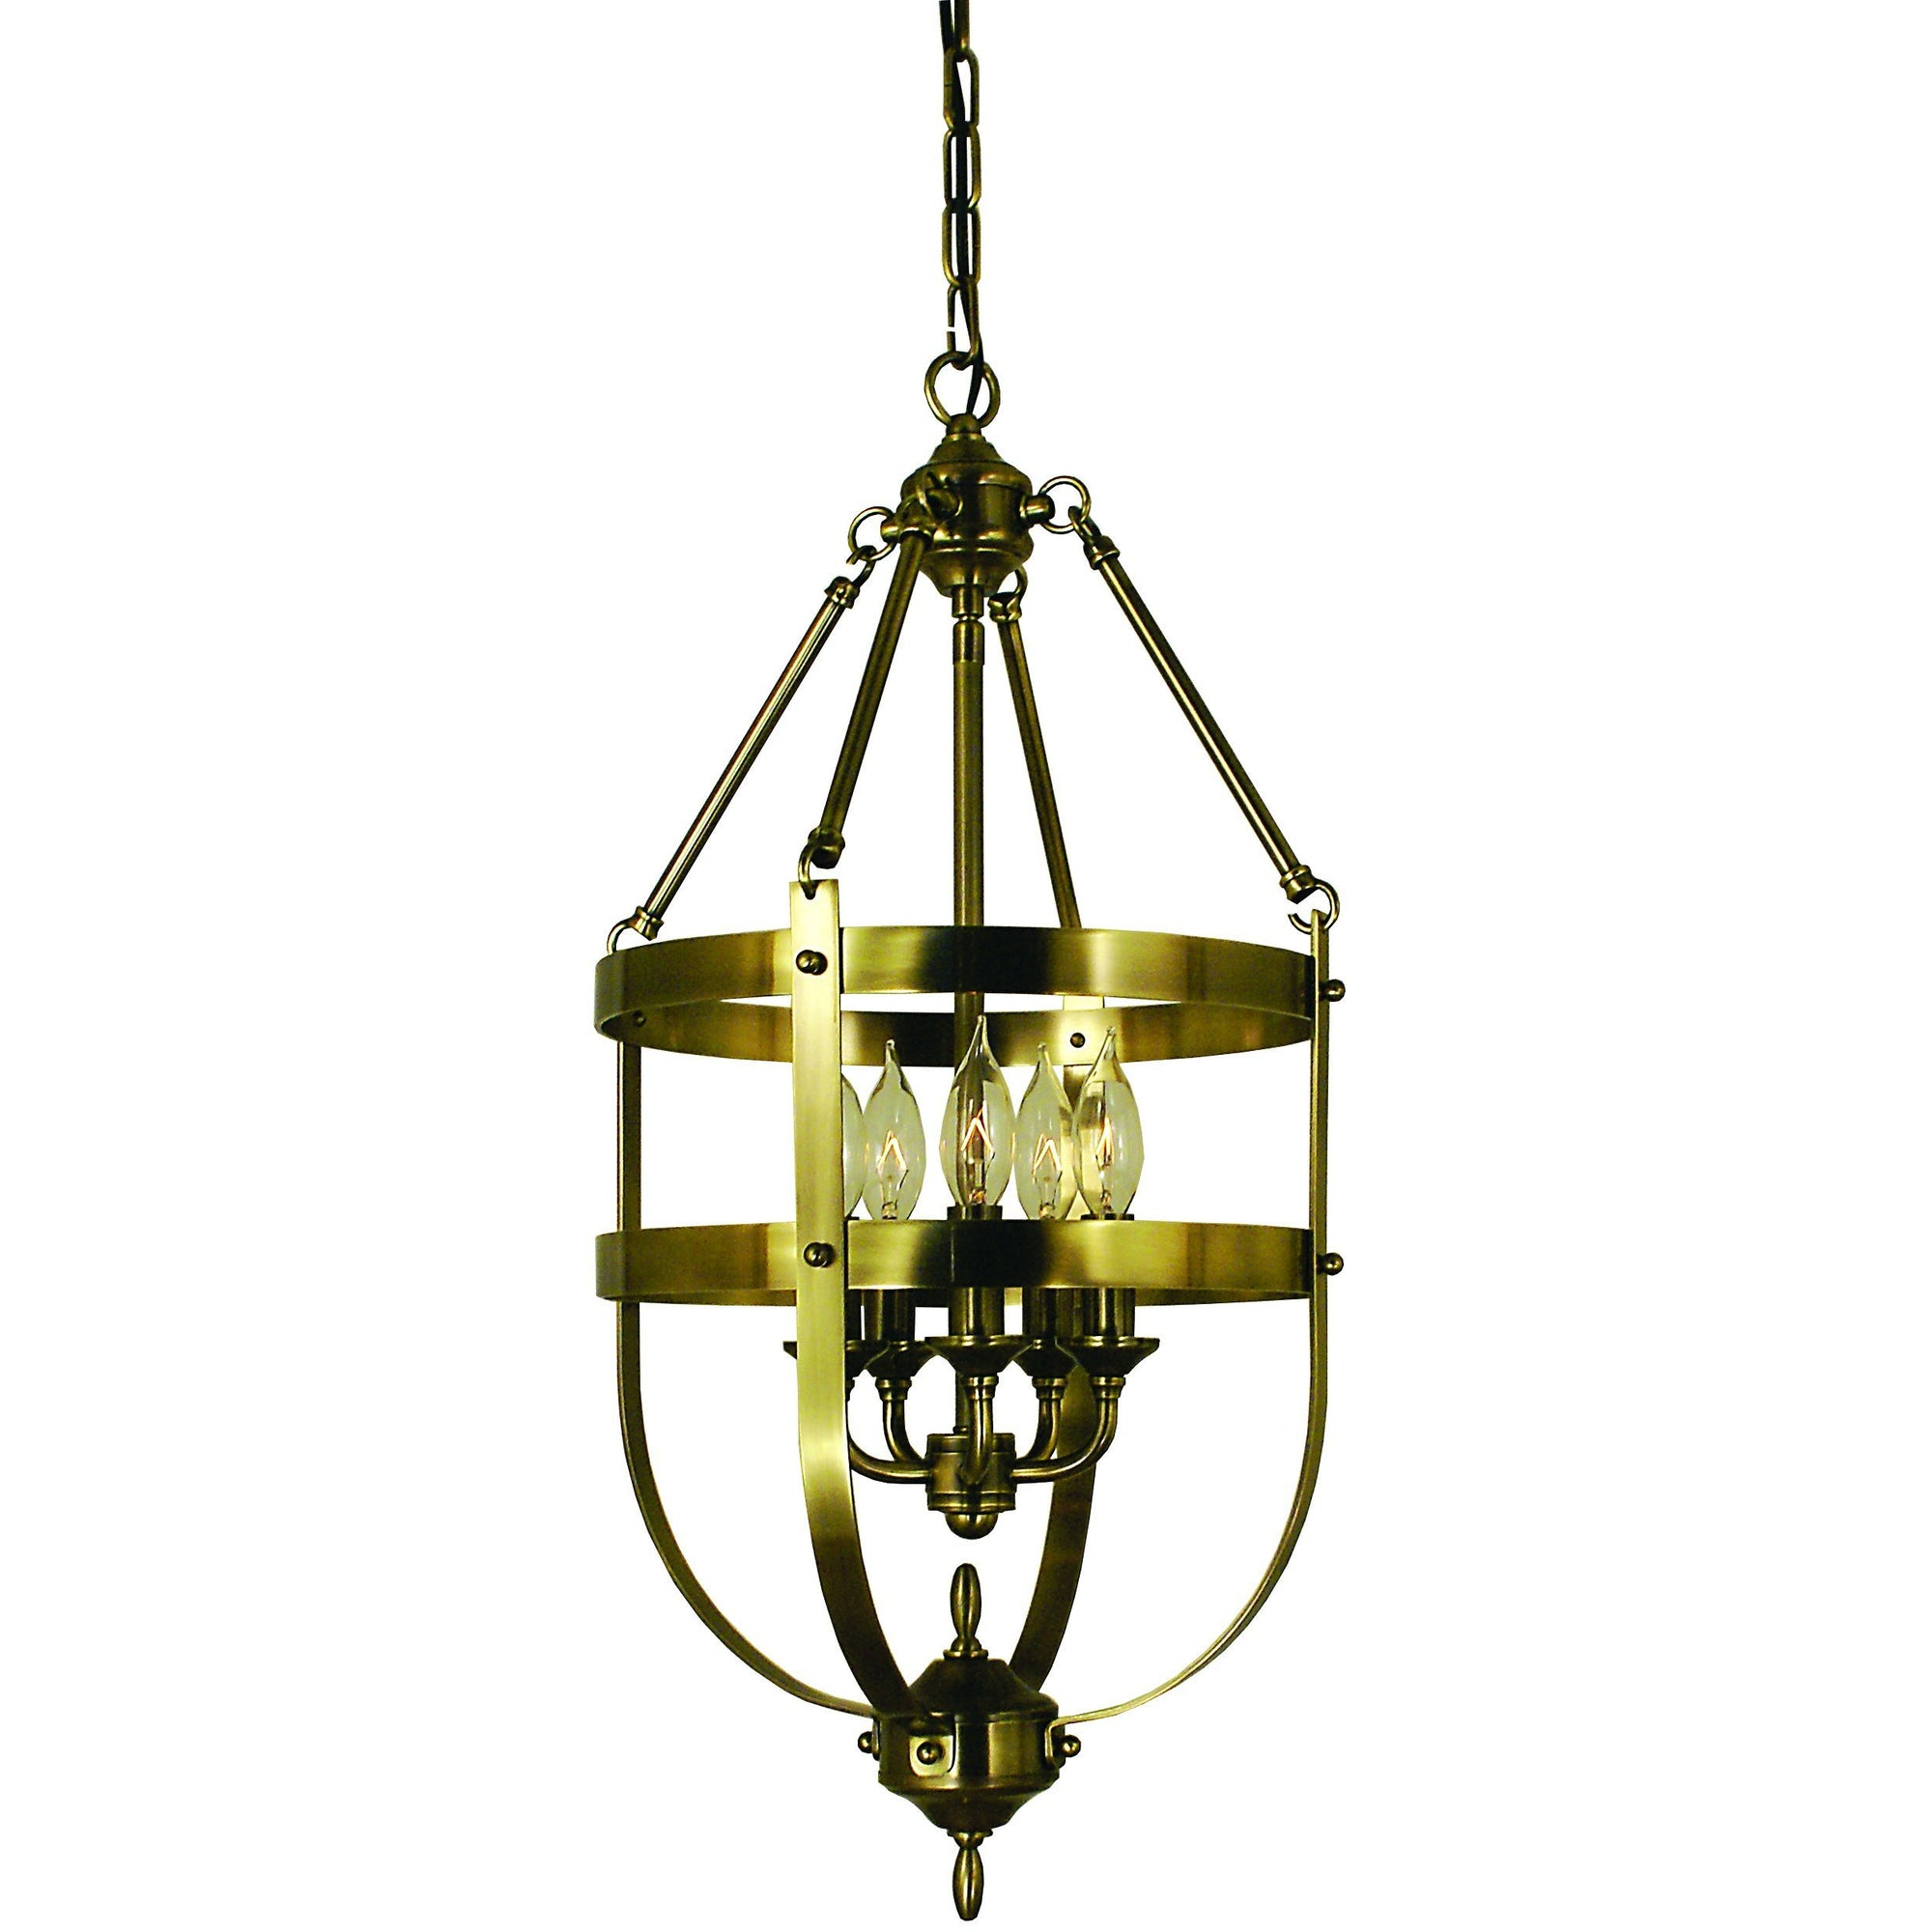 Framburg Chandeliers Antique Brass 5-Light Antique Brass Hannover Dining Chandelier by Framburg 1016